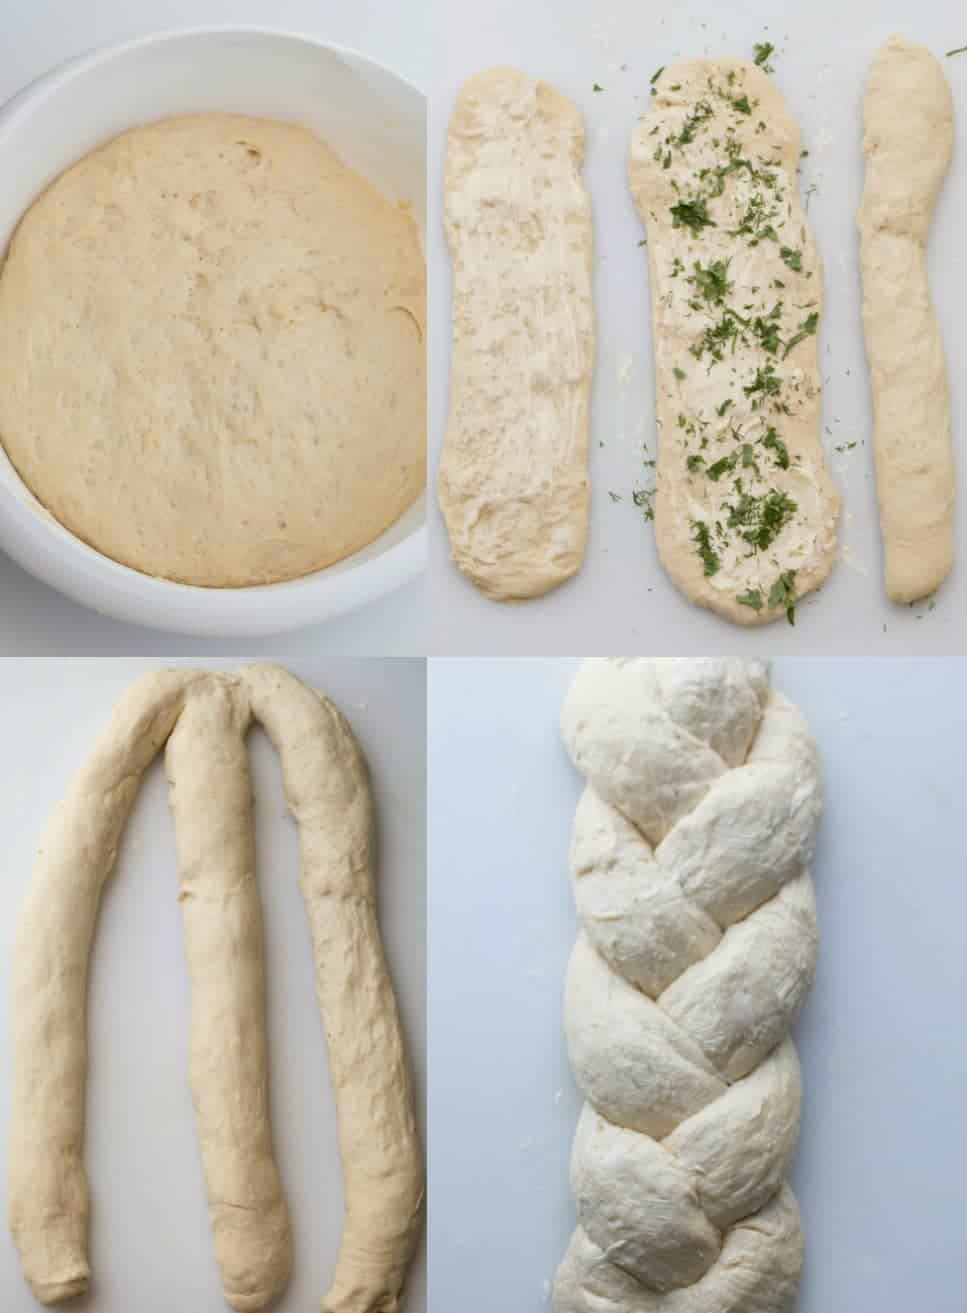 Step by step pictures of how to make butter herbs braided bread recipe.